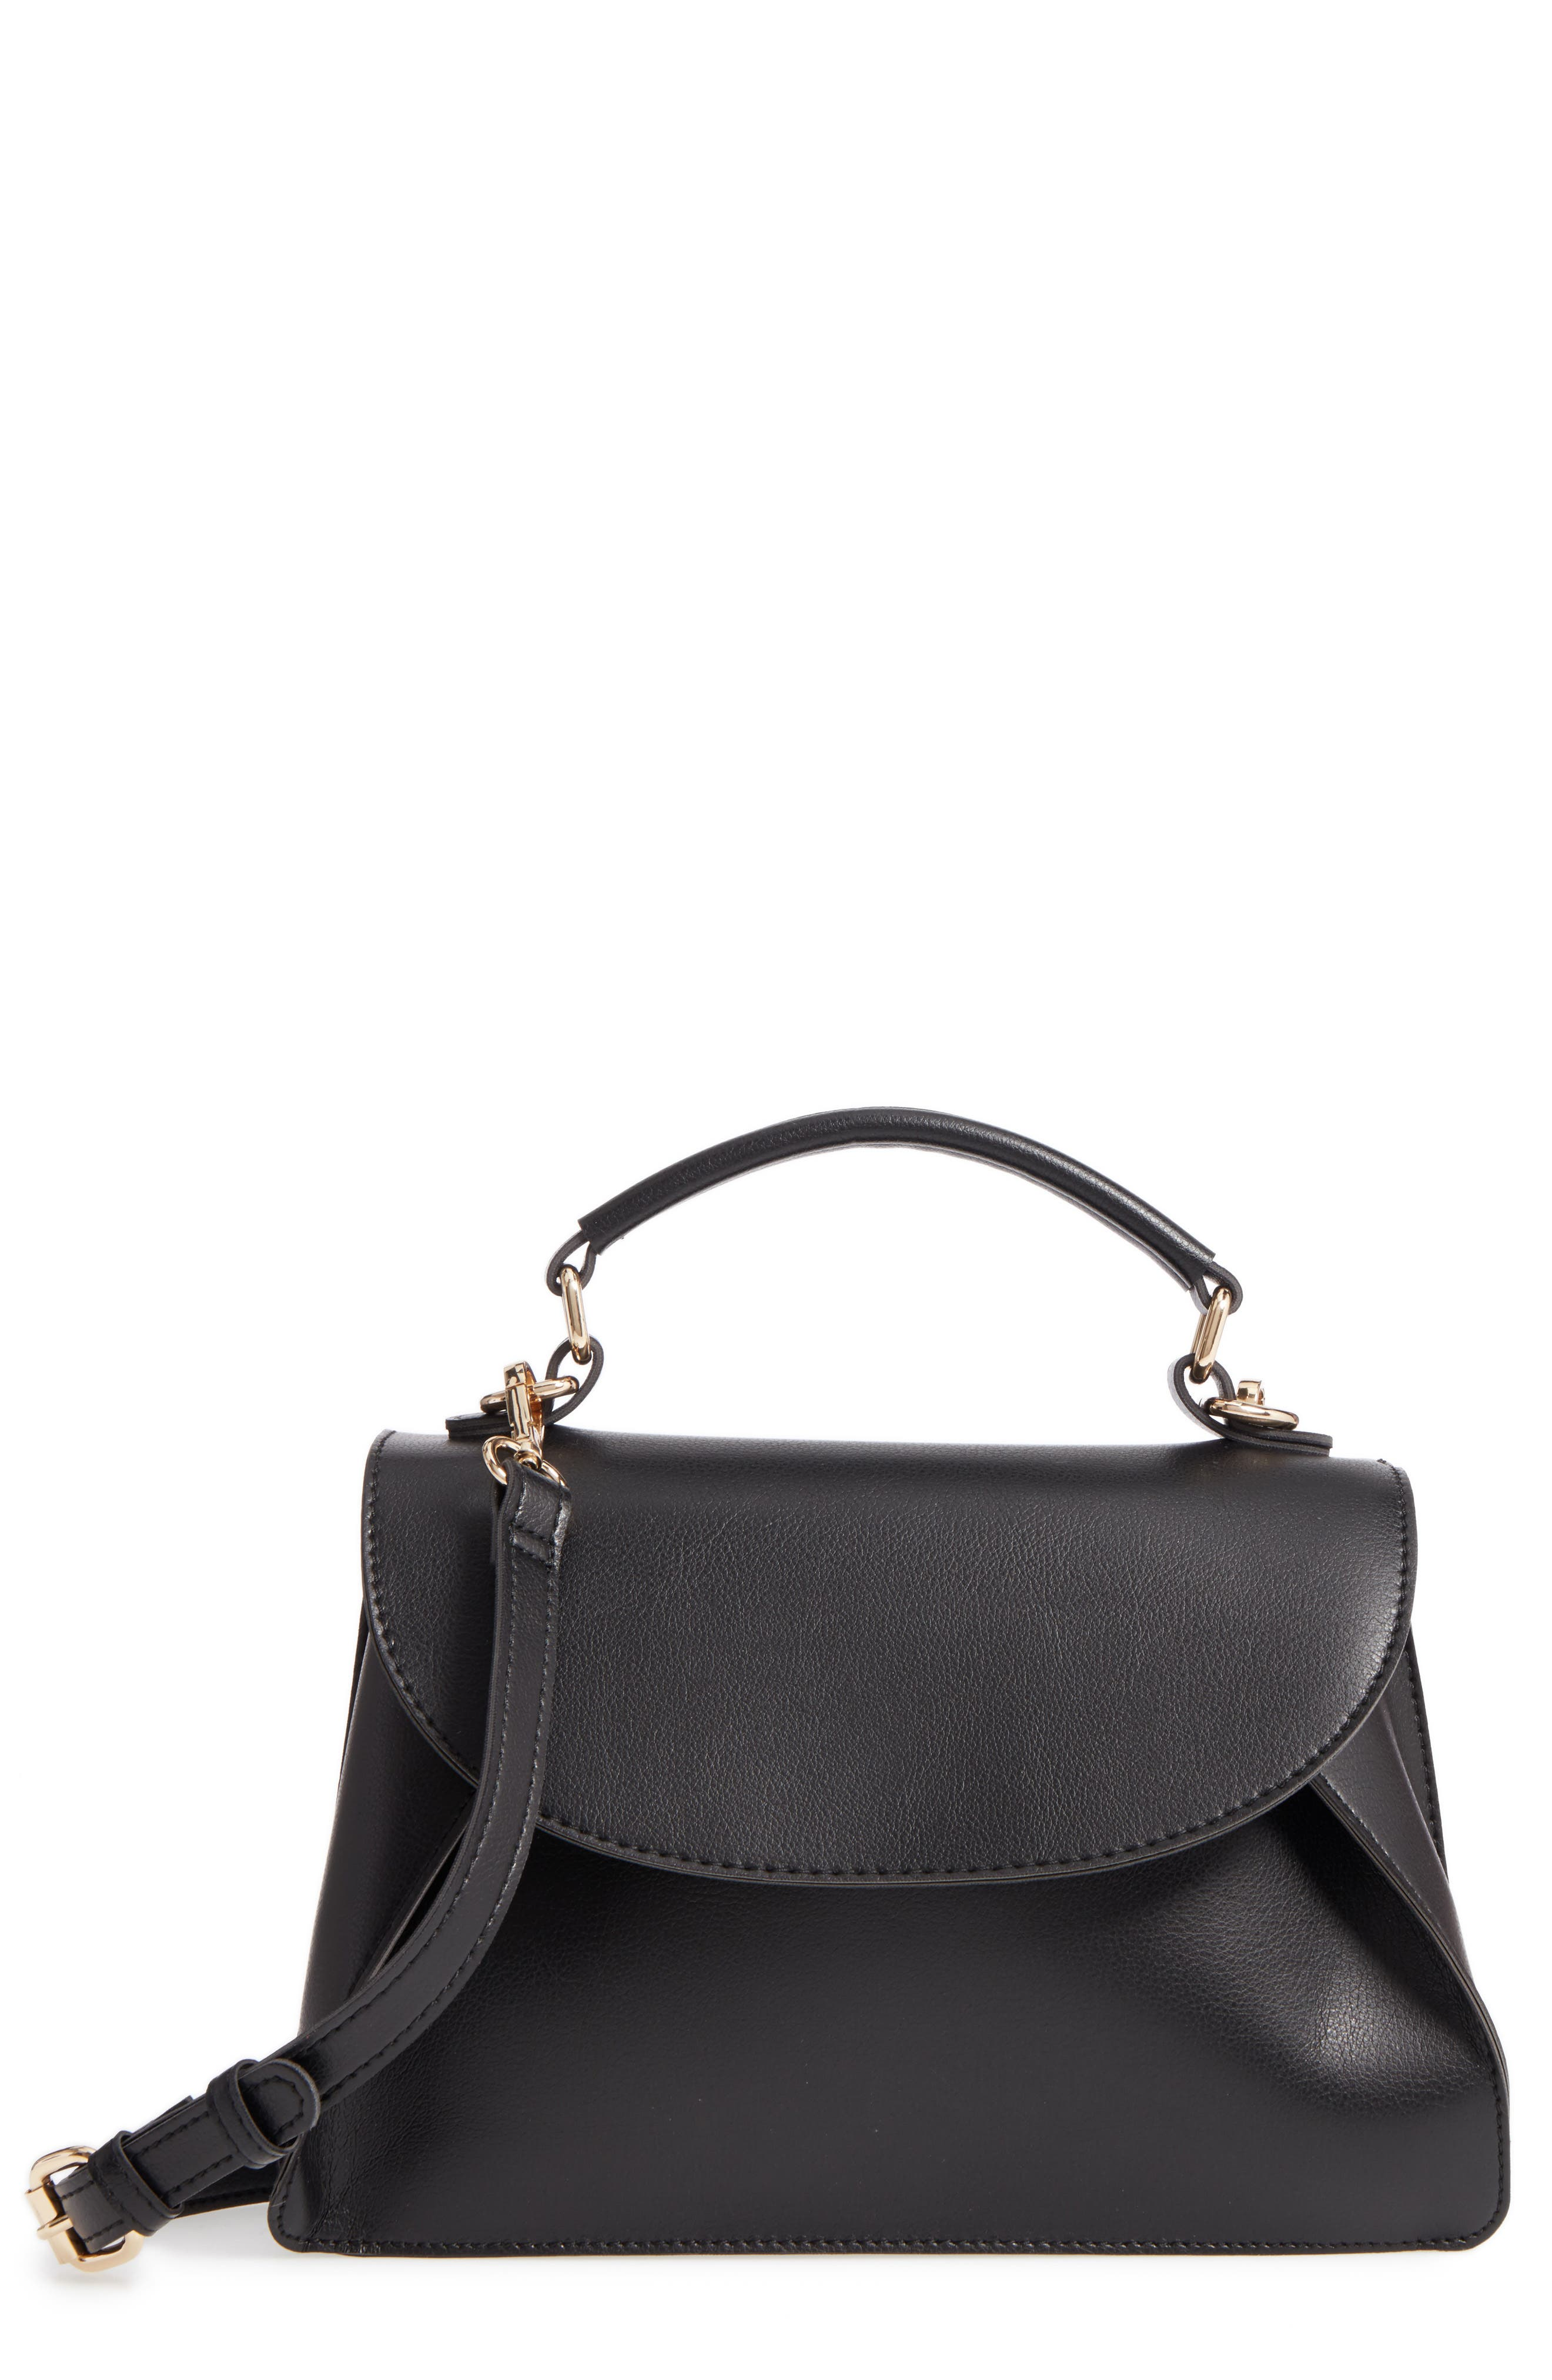 Alternate Image 1 Selected - Sole Society Izzy Faux Leather Top Handle Satchel